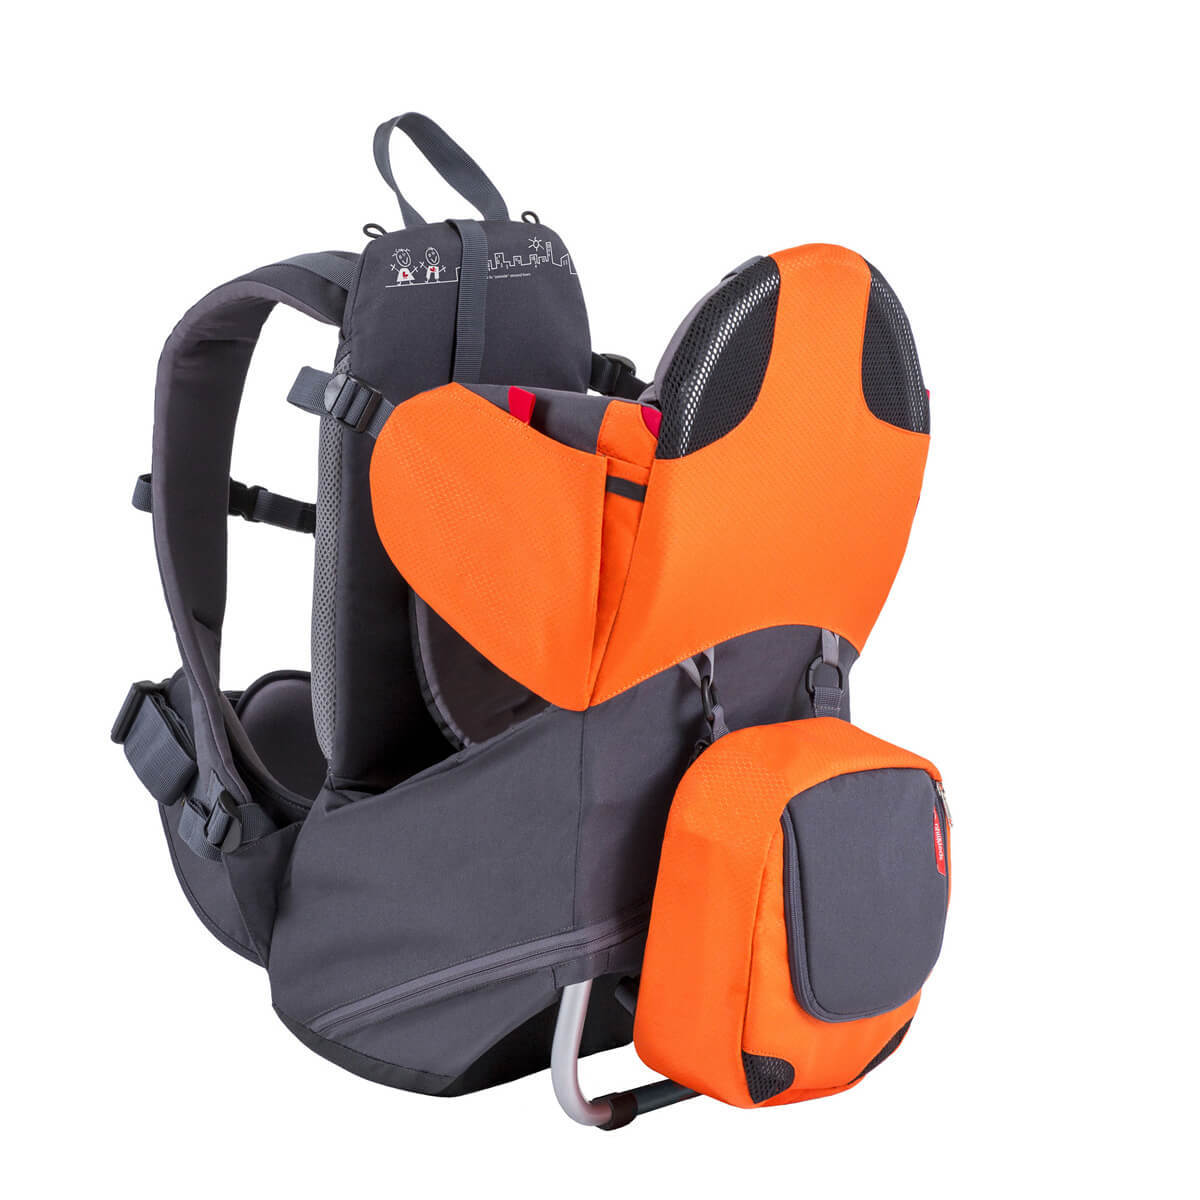 phil&teds parade baby carrier Orange パレード フィルアンドテッズ